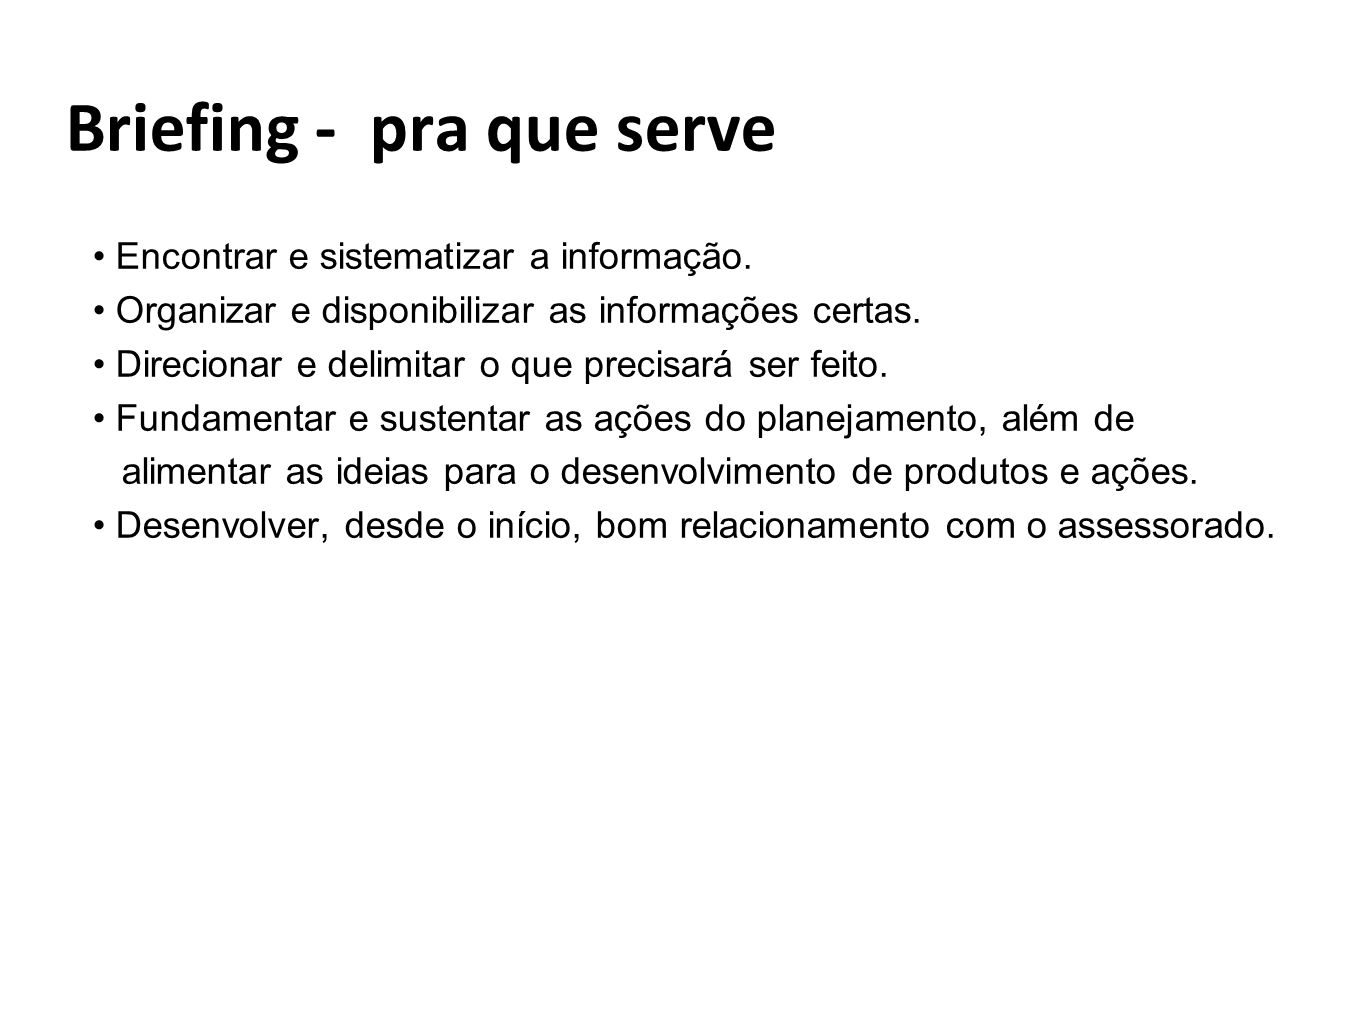 Briefing - pra que serve